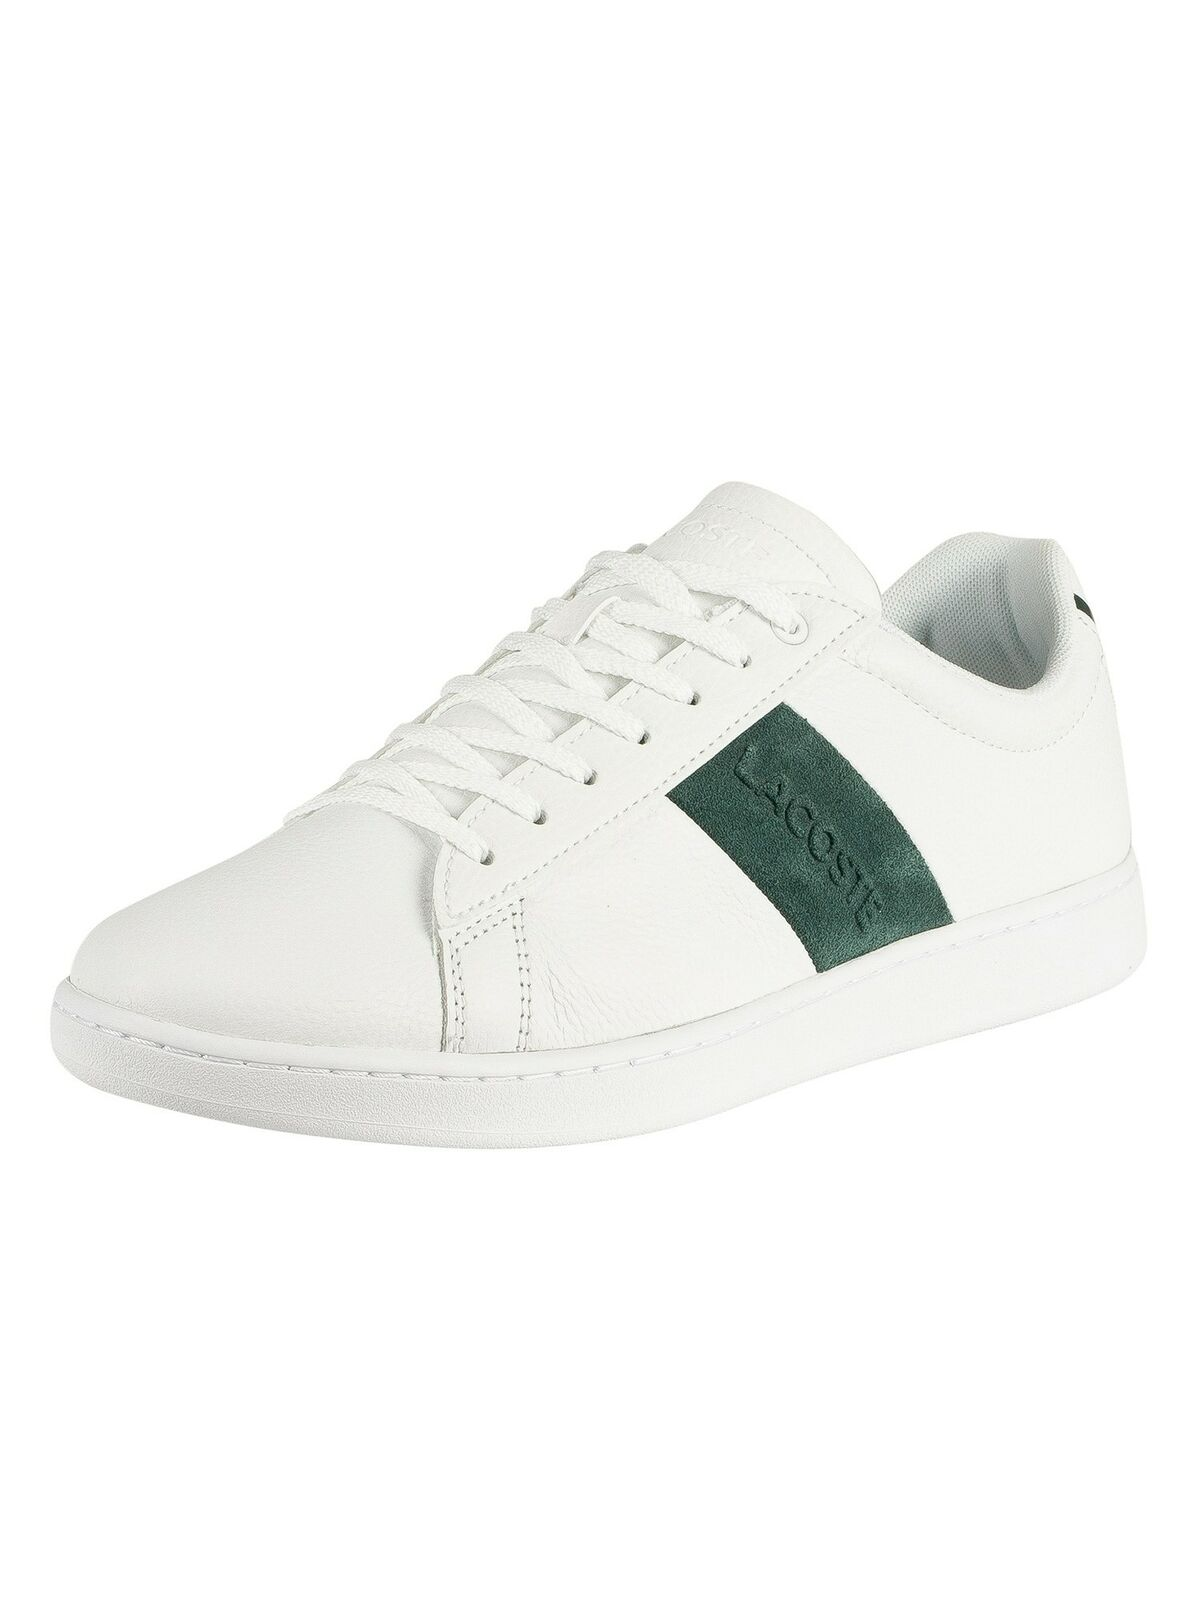 Lacoste Men's Carnaby Evo 319 1 SMA Leather Trainers, White